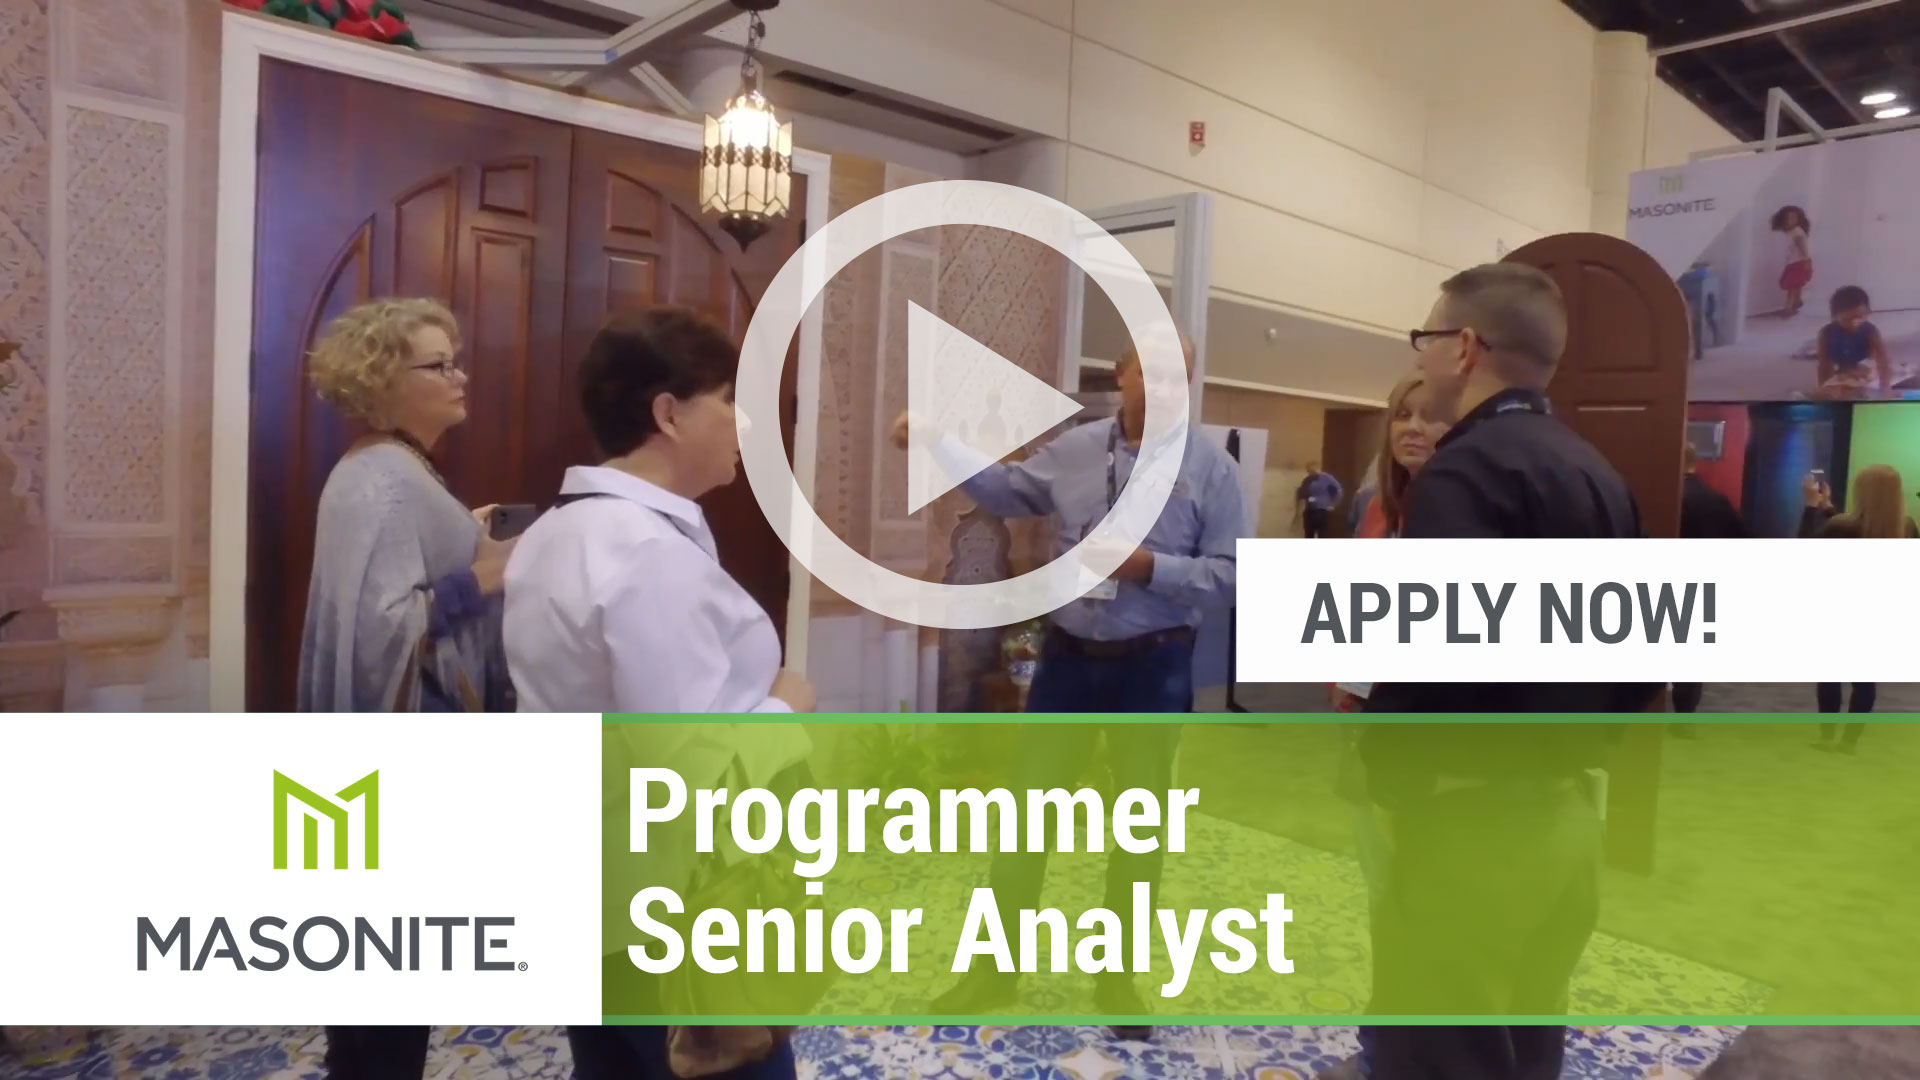 Watch our careers video for available job opening Programmer Senior Analyst in Tampa, FL, USA